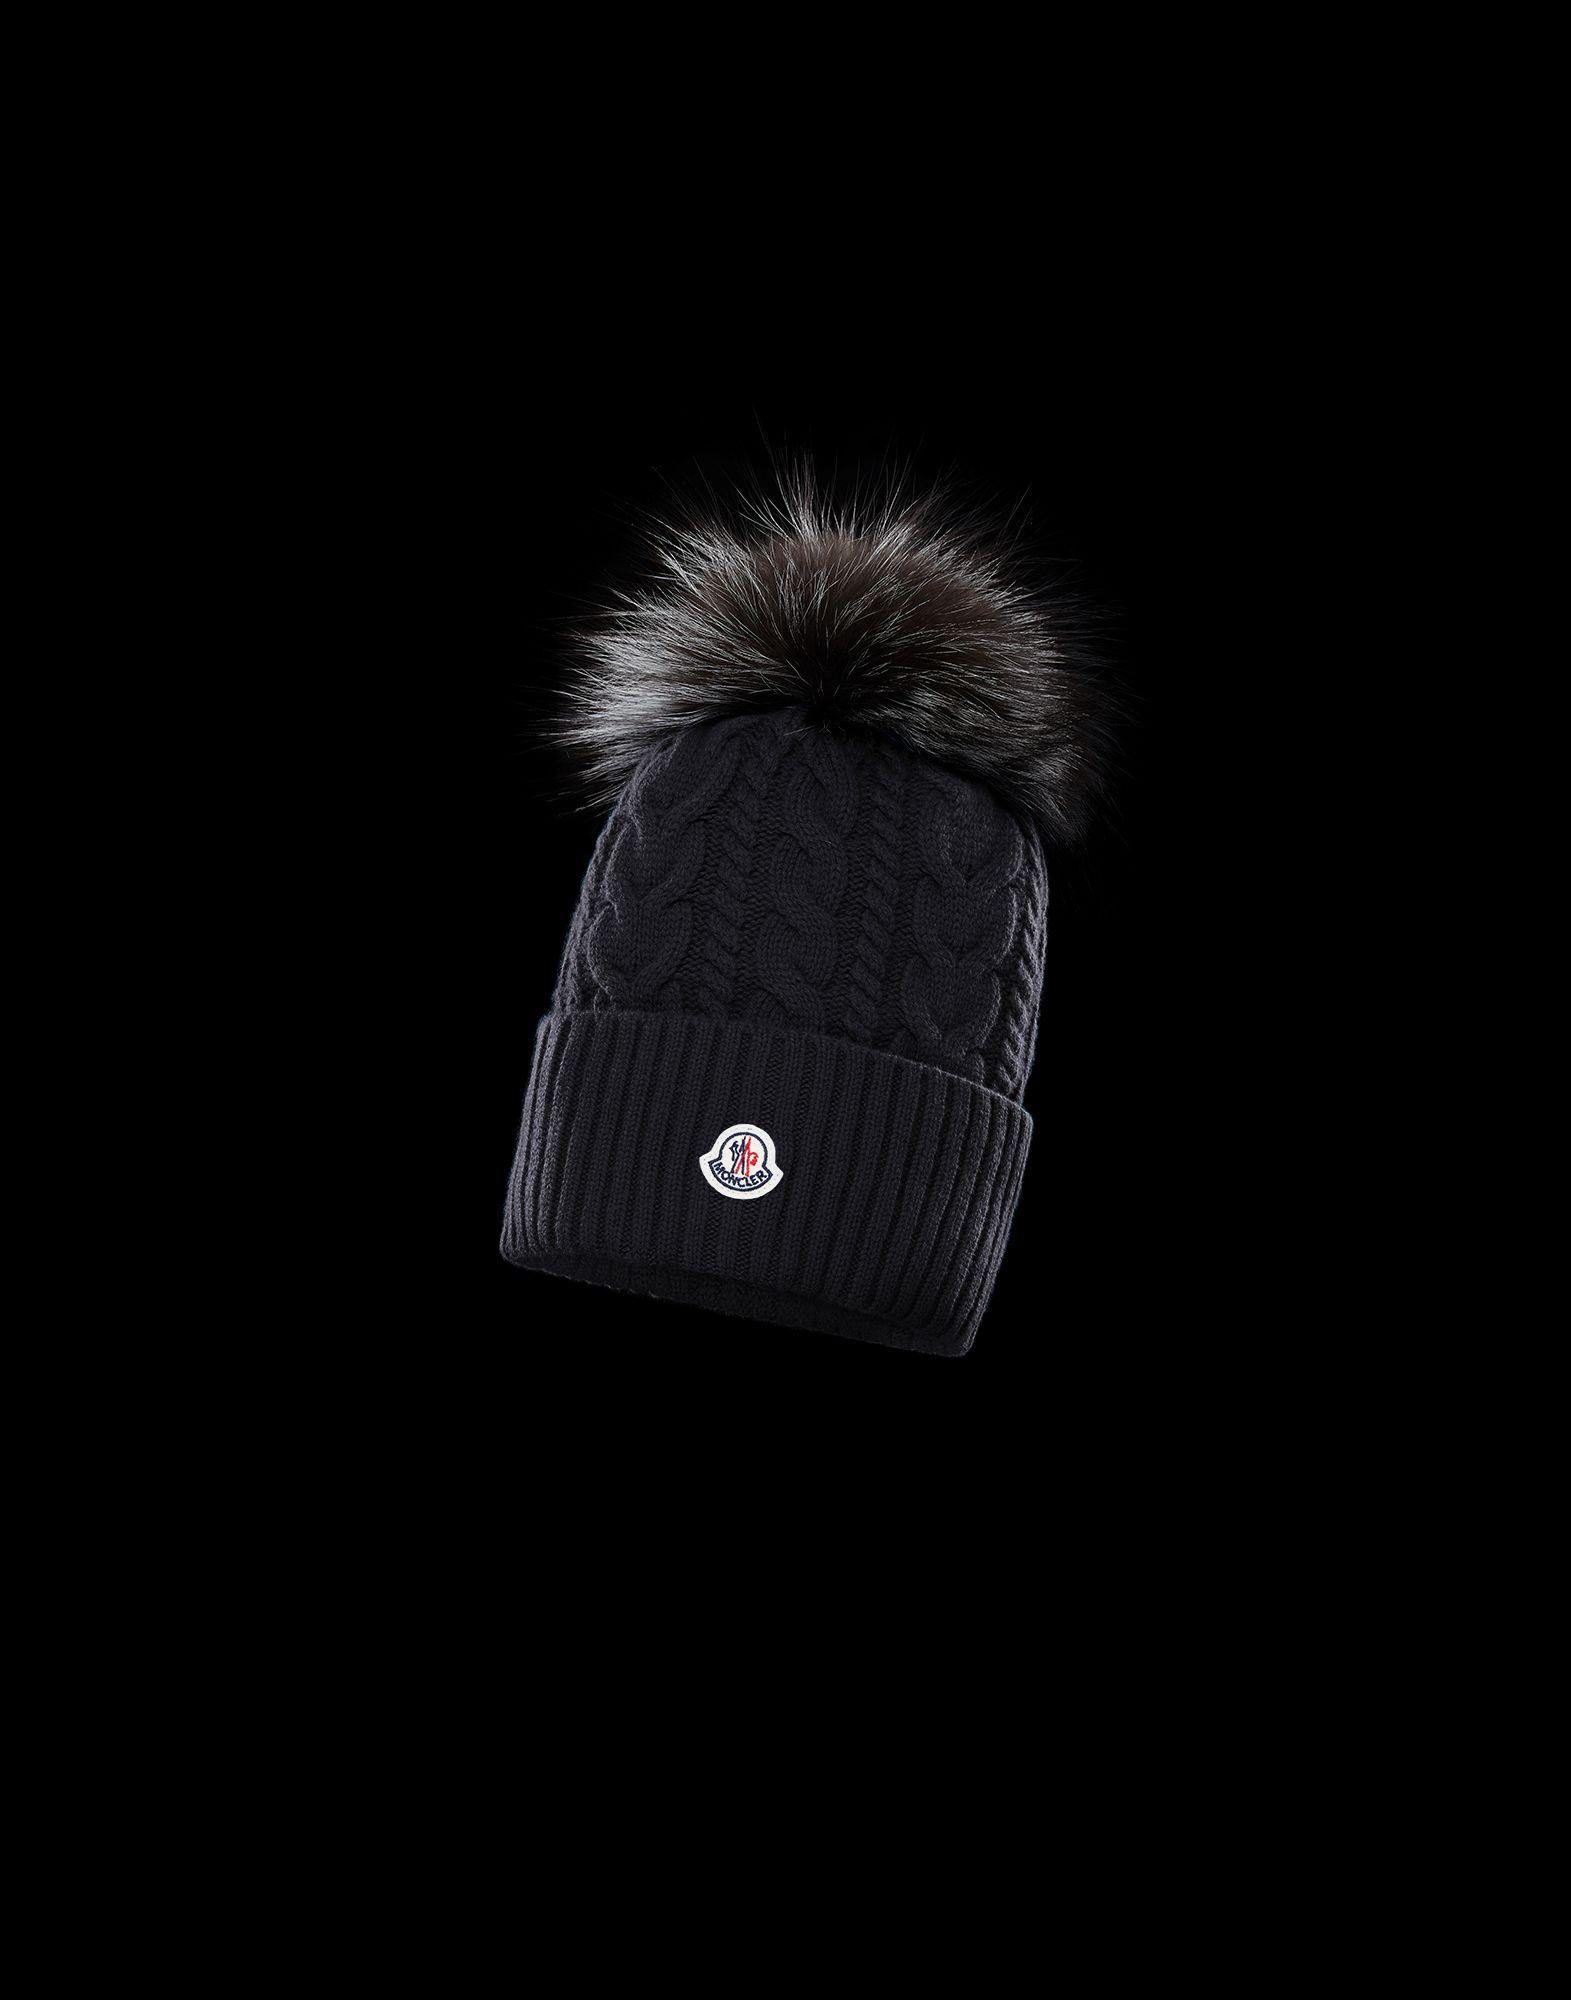 655997eaef1b Moncler Hat in Black - Lyst